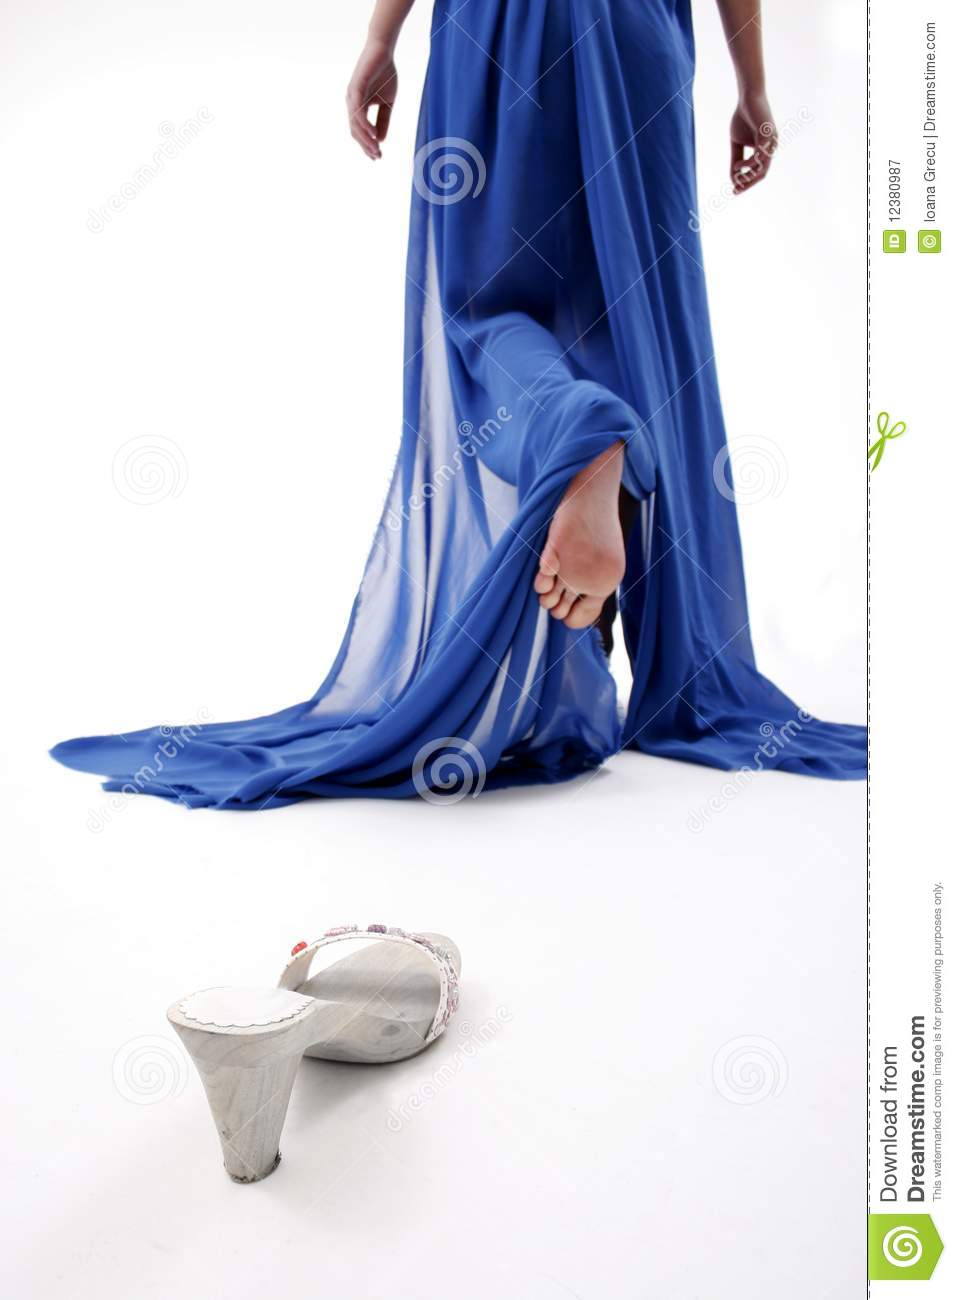 Cinderella Lost Shoe Stock Image Image Of Charming Fairytale